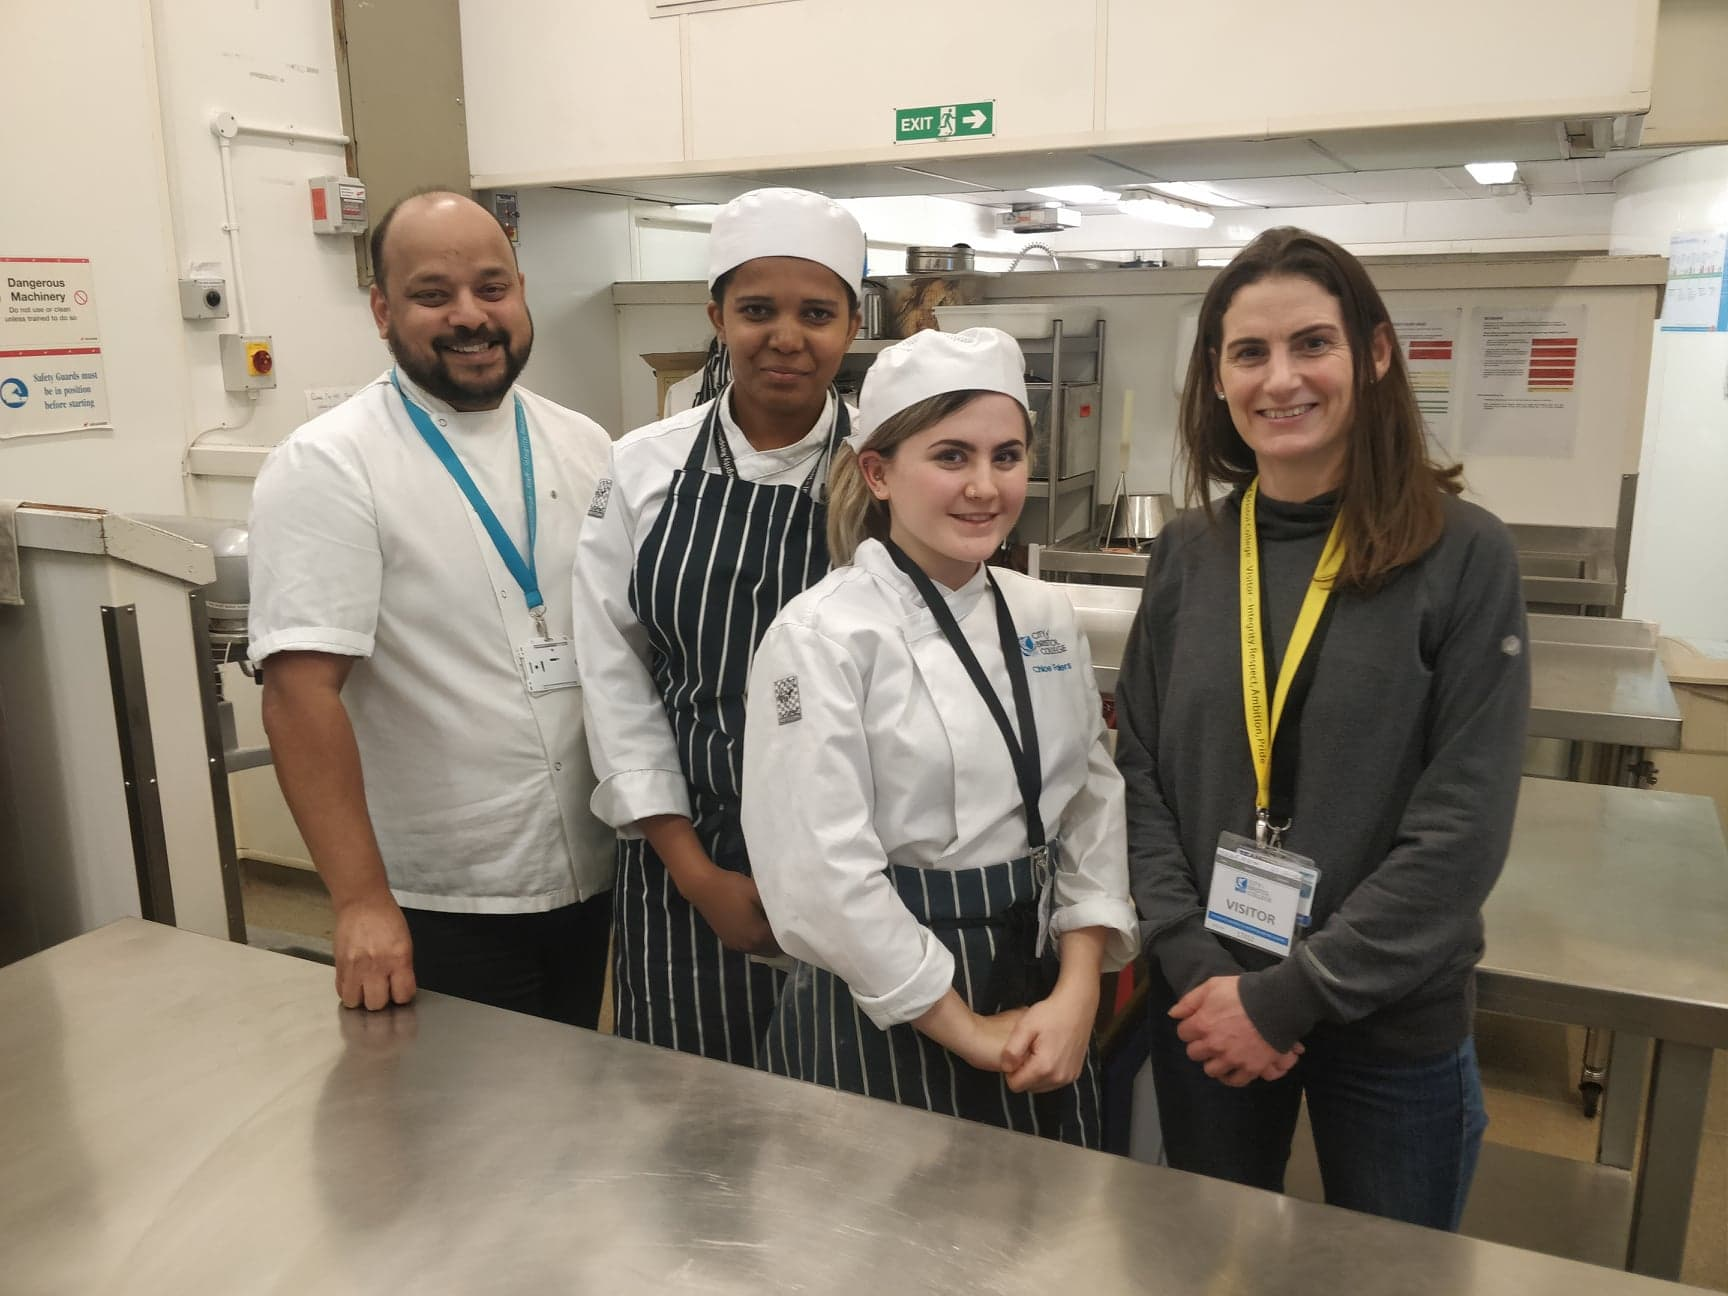 Team GB chefs at City of Bristol College